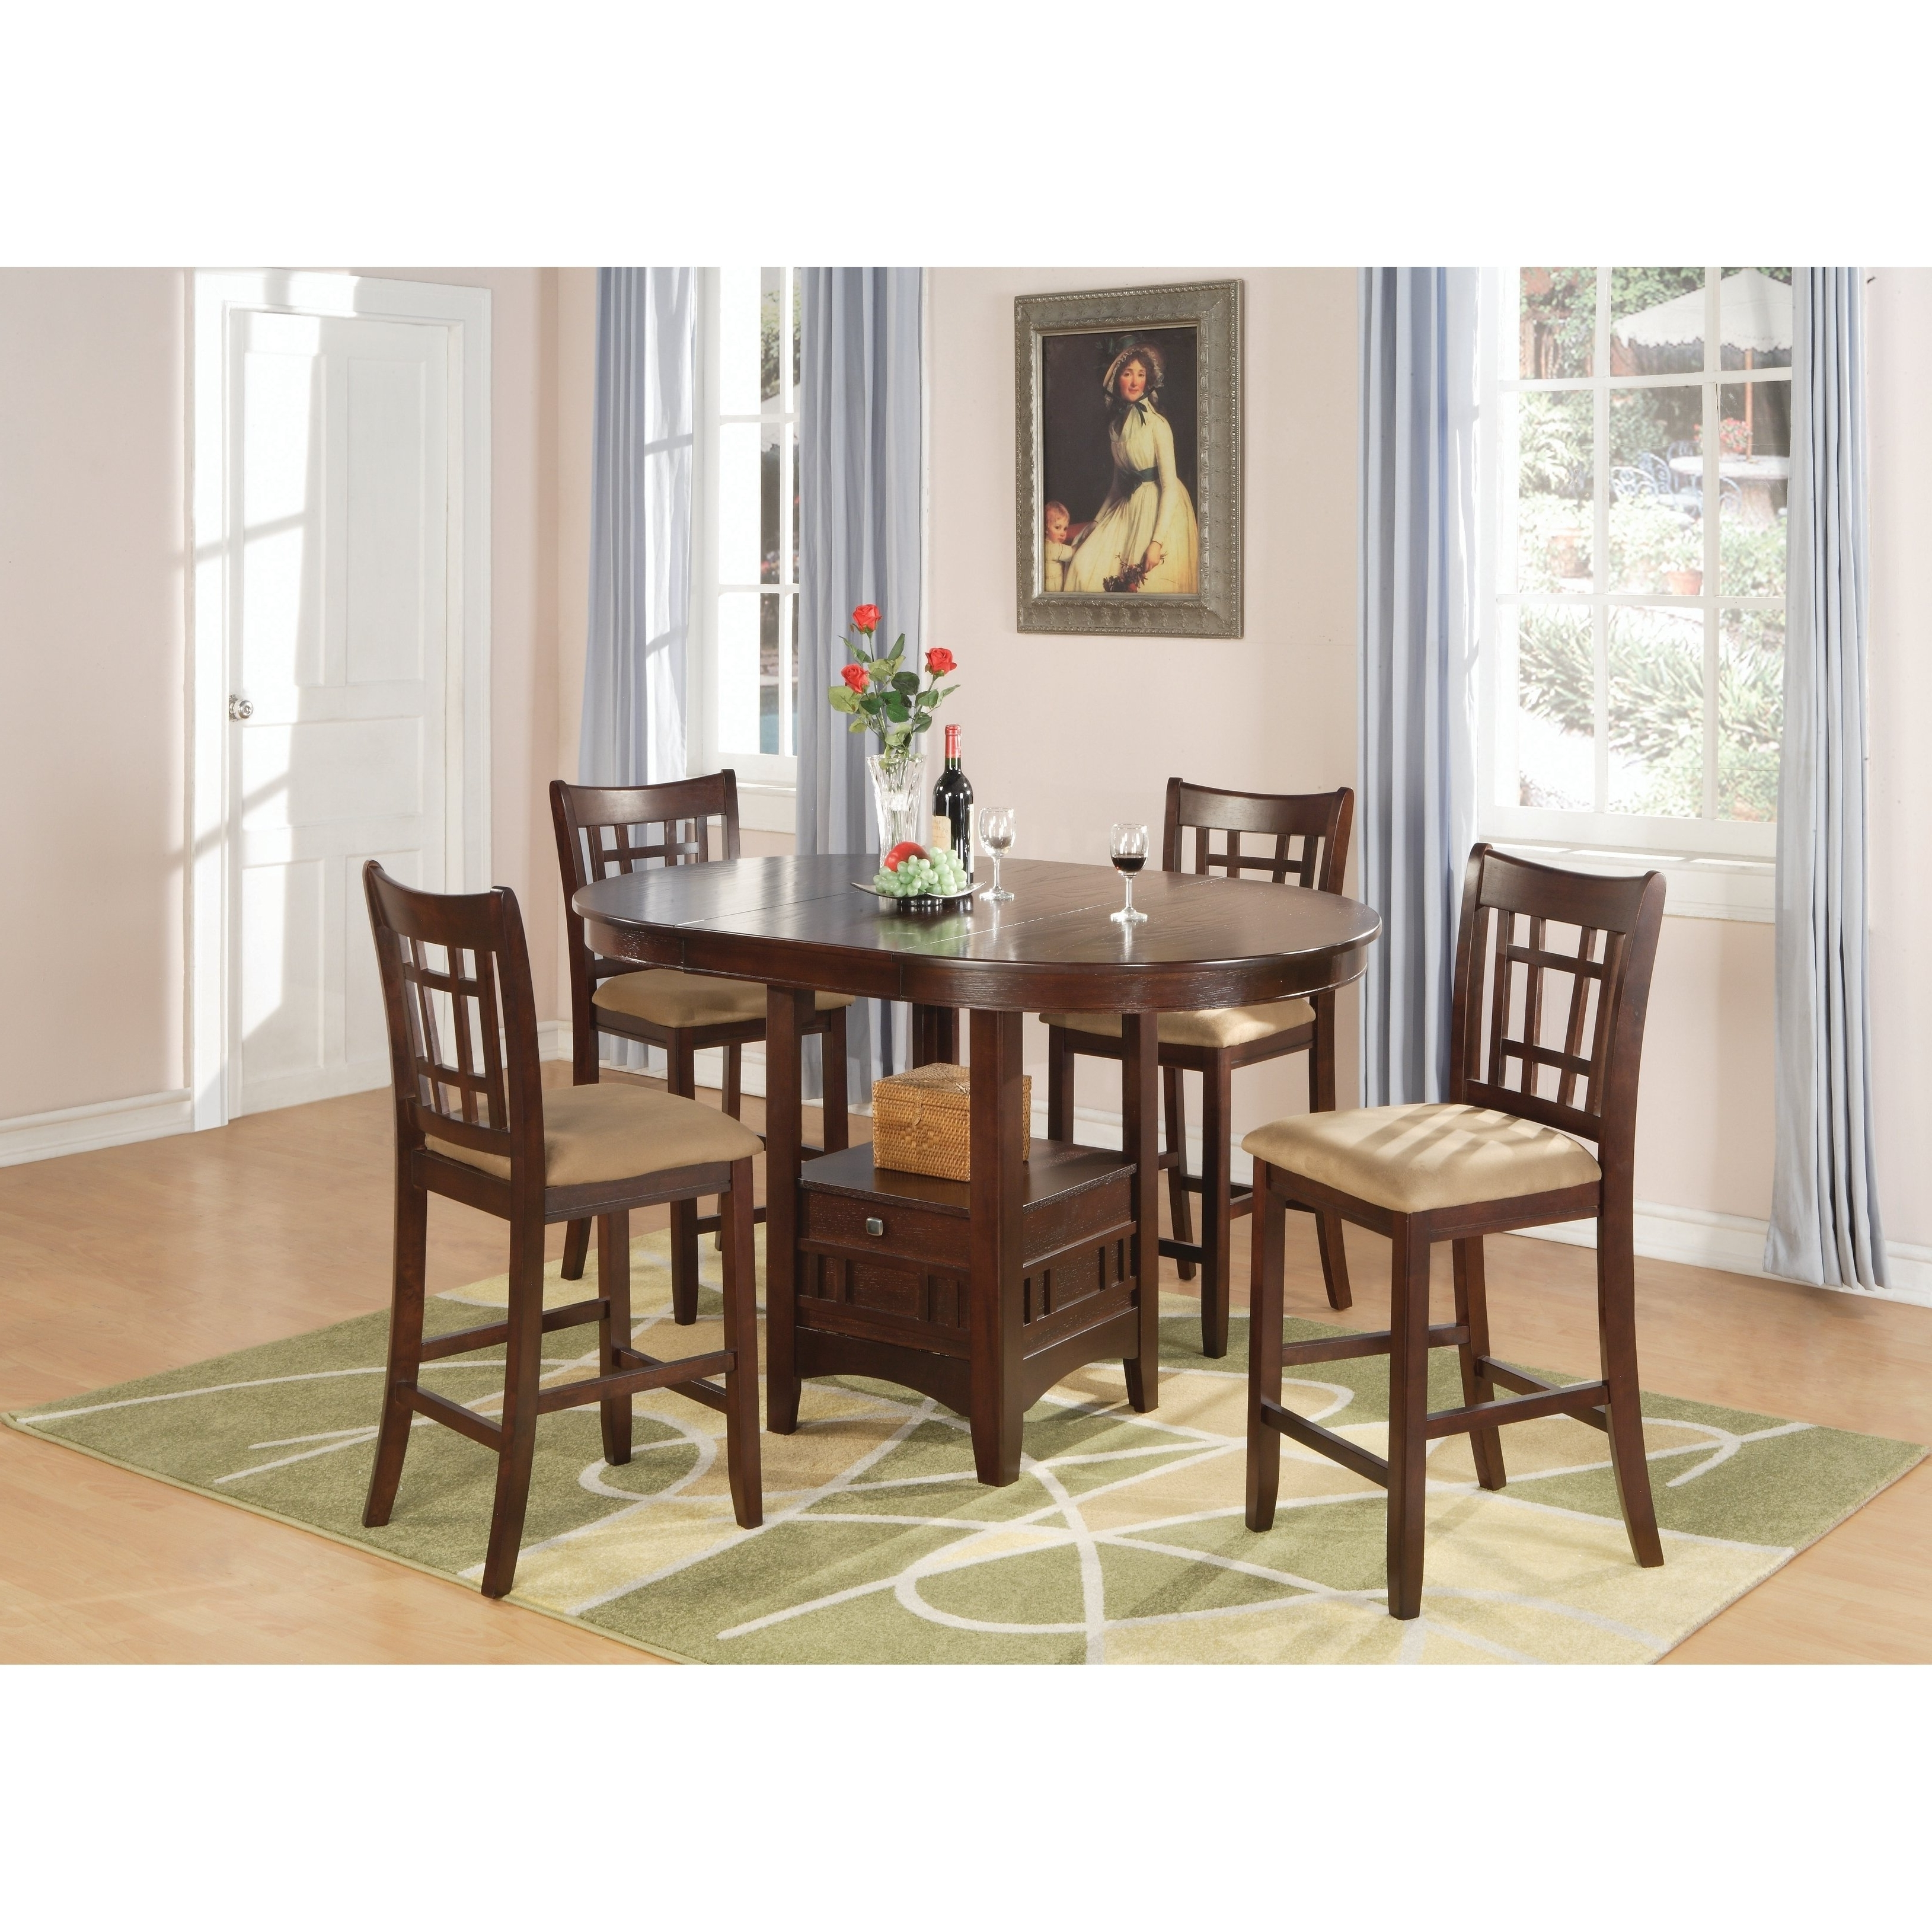 Jaxon 5 Piece Extension Counter Sets With Fabric Stools Intended For Most Popular Lavon Transitional Warm Brown 5 Piece Counter Height Dining Set (View 15 of 25)